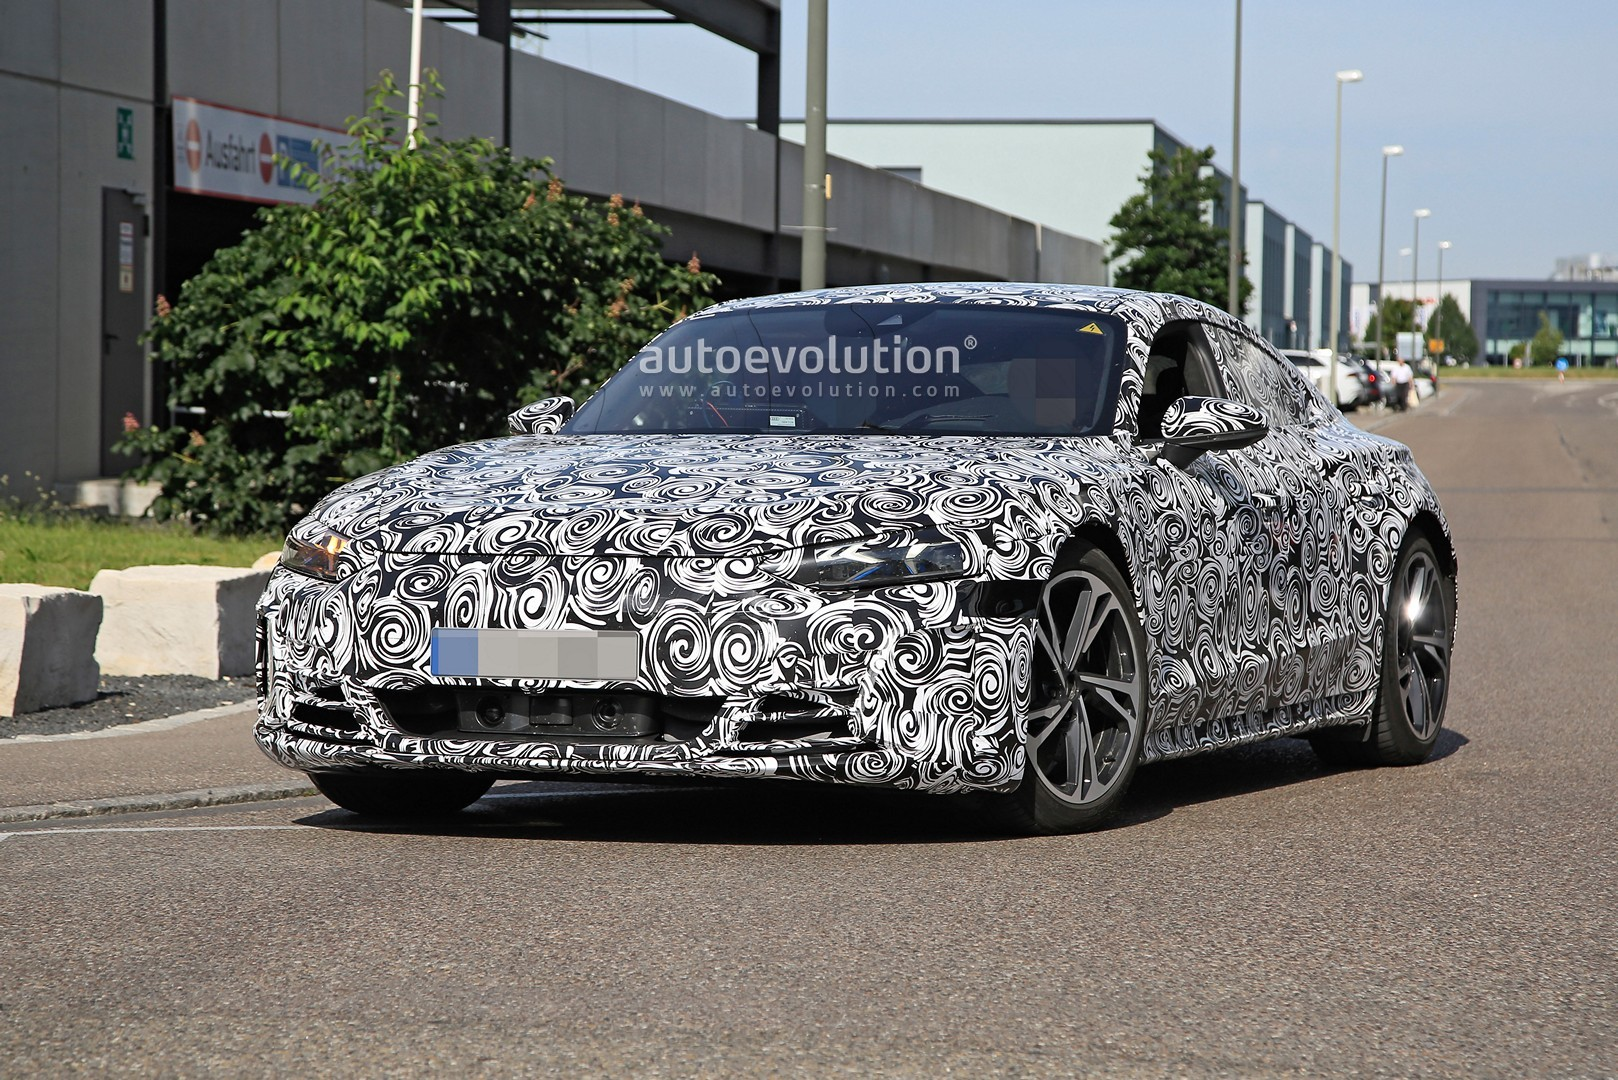 2021-audi-​e-tron-gt-​spotted-10​0000-ev-ge​tting-read​y-for-prod​uction_2